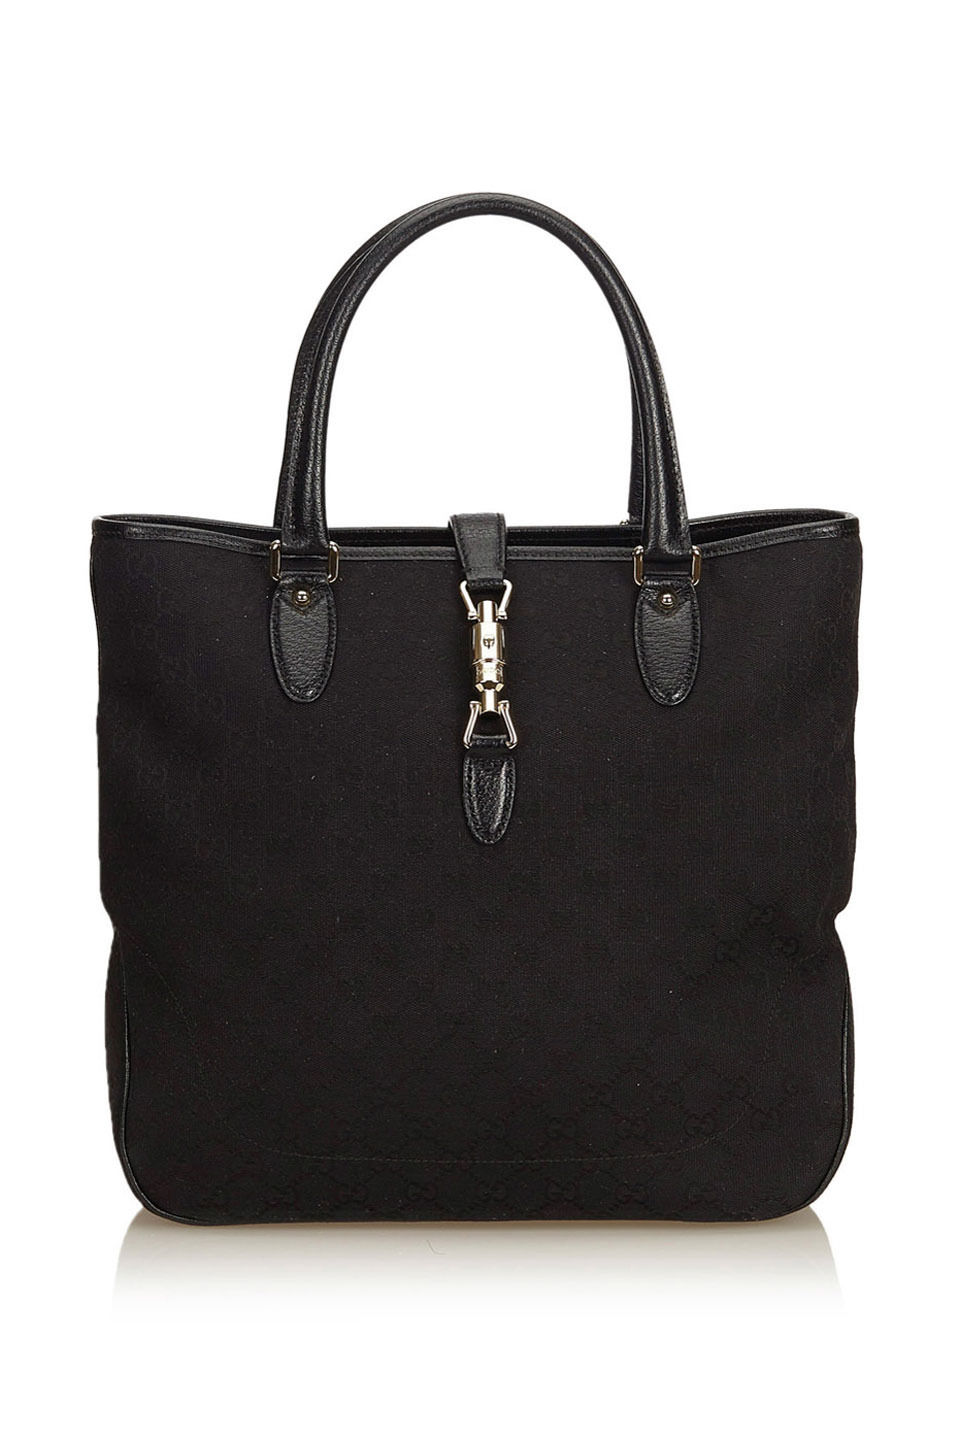 Guccissima New Jackie Tote in Black